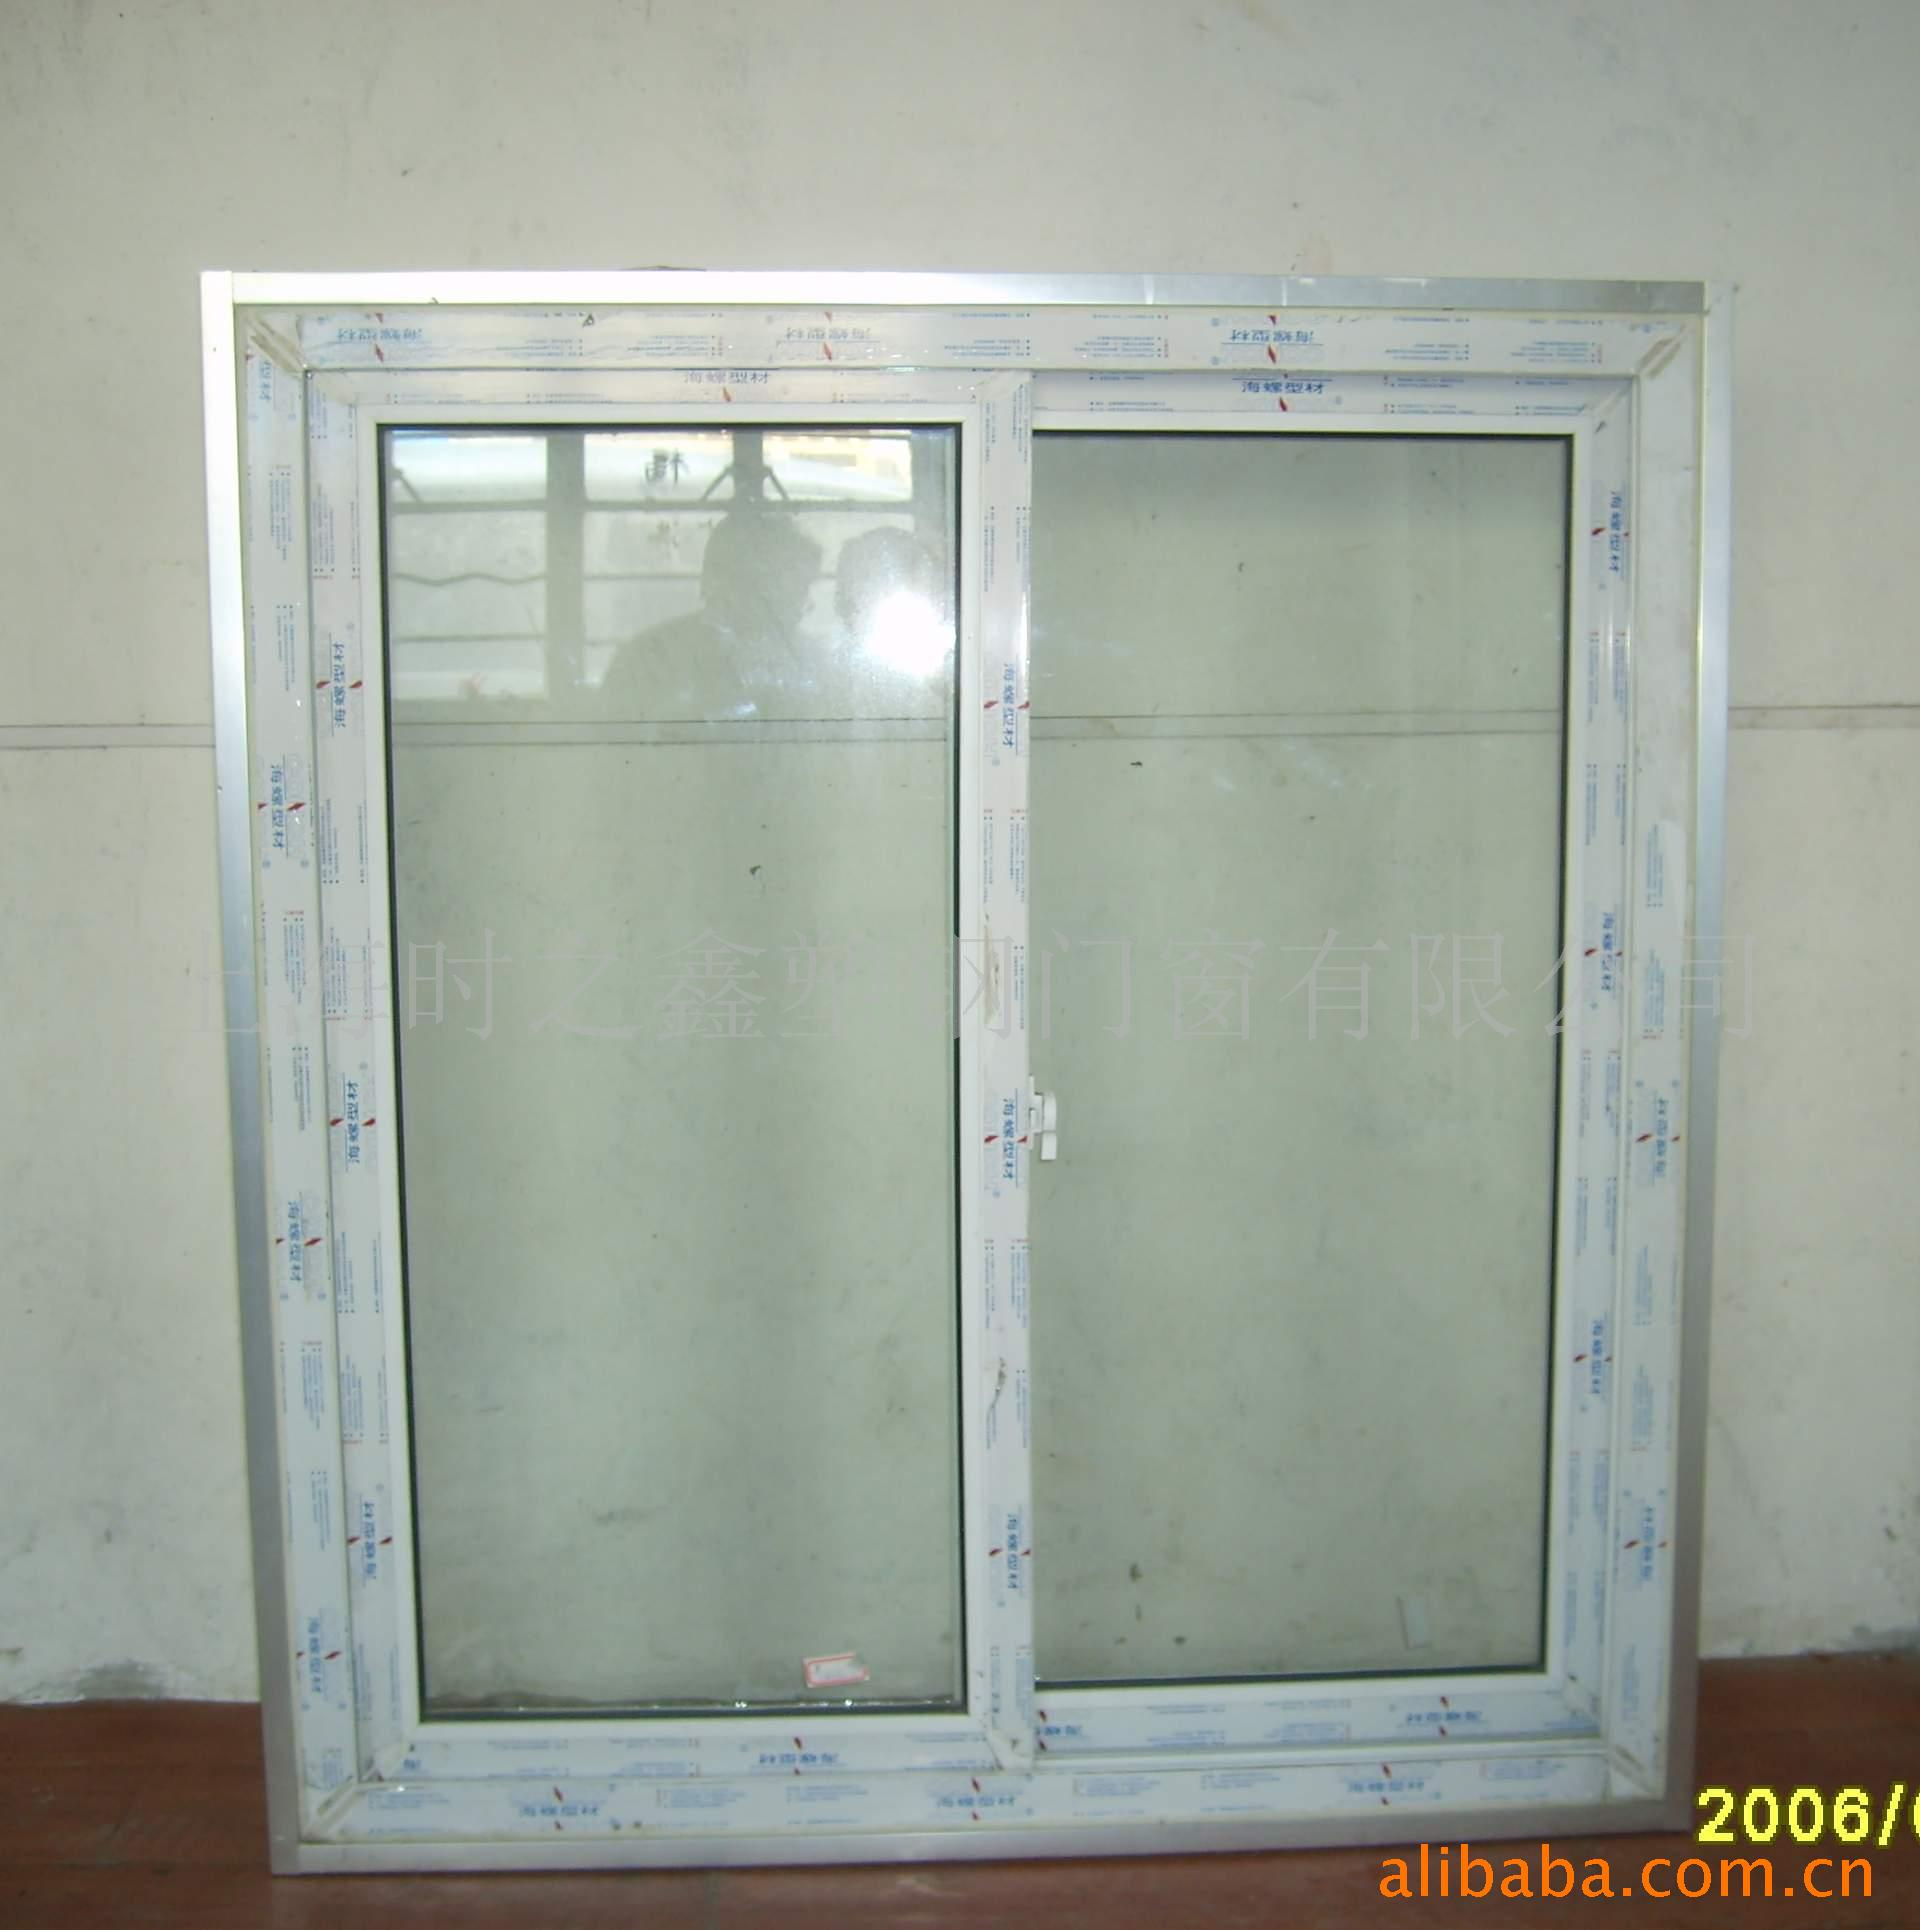 Energy saving heavy duty double glazed upvc sliding window